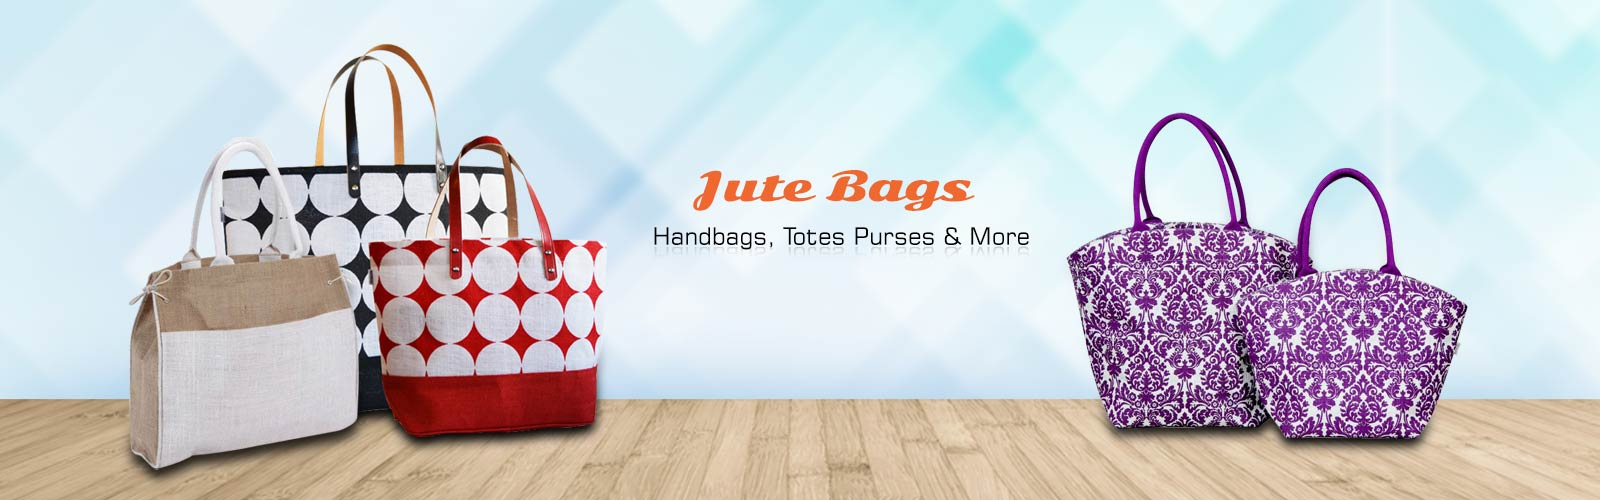 Wholesale Jute Bag Supplier in Malta